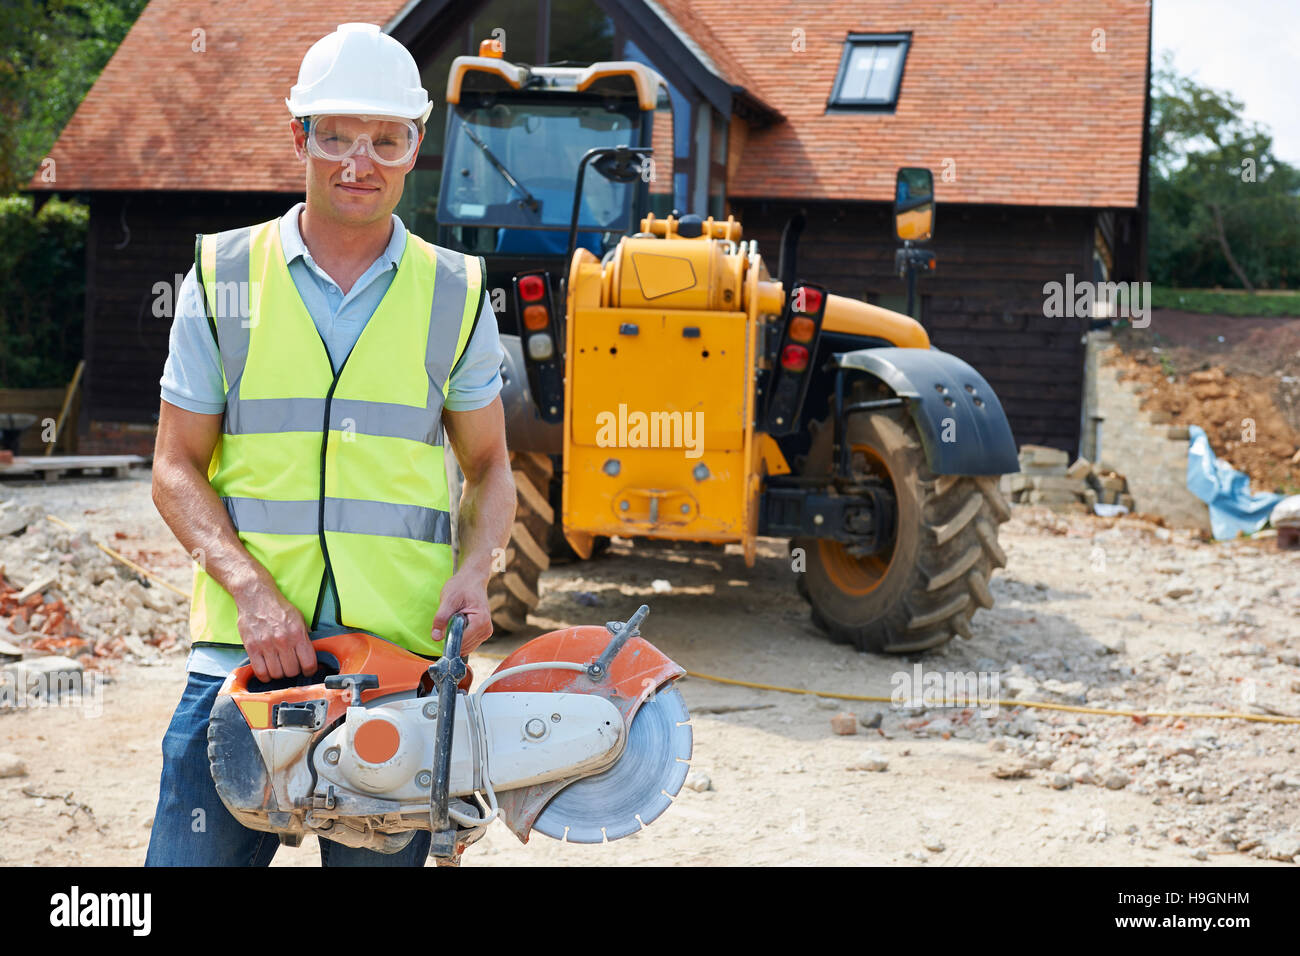 Construction Worker On Site Holding Circular Saw - Stock Image